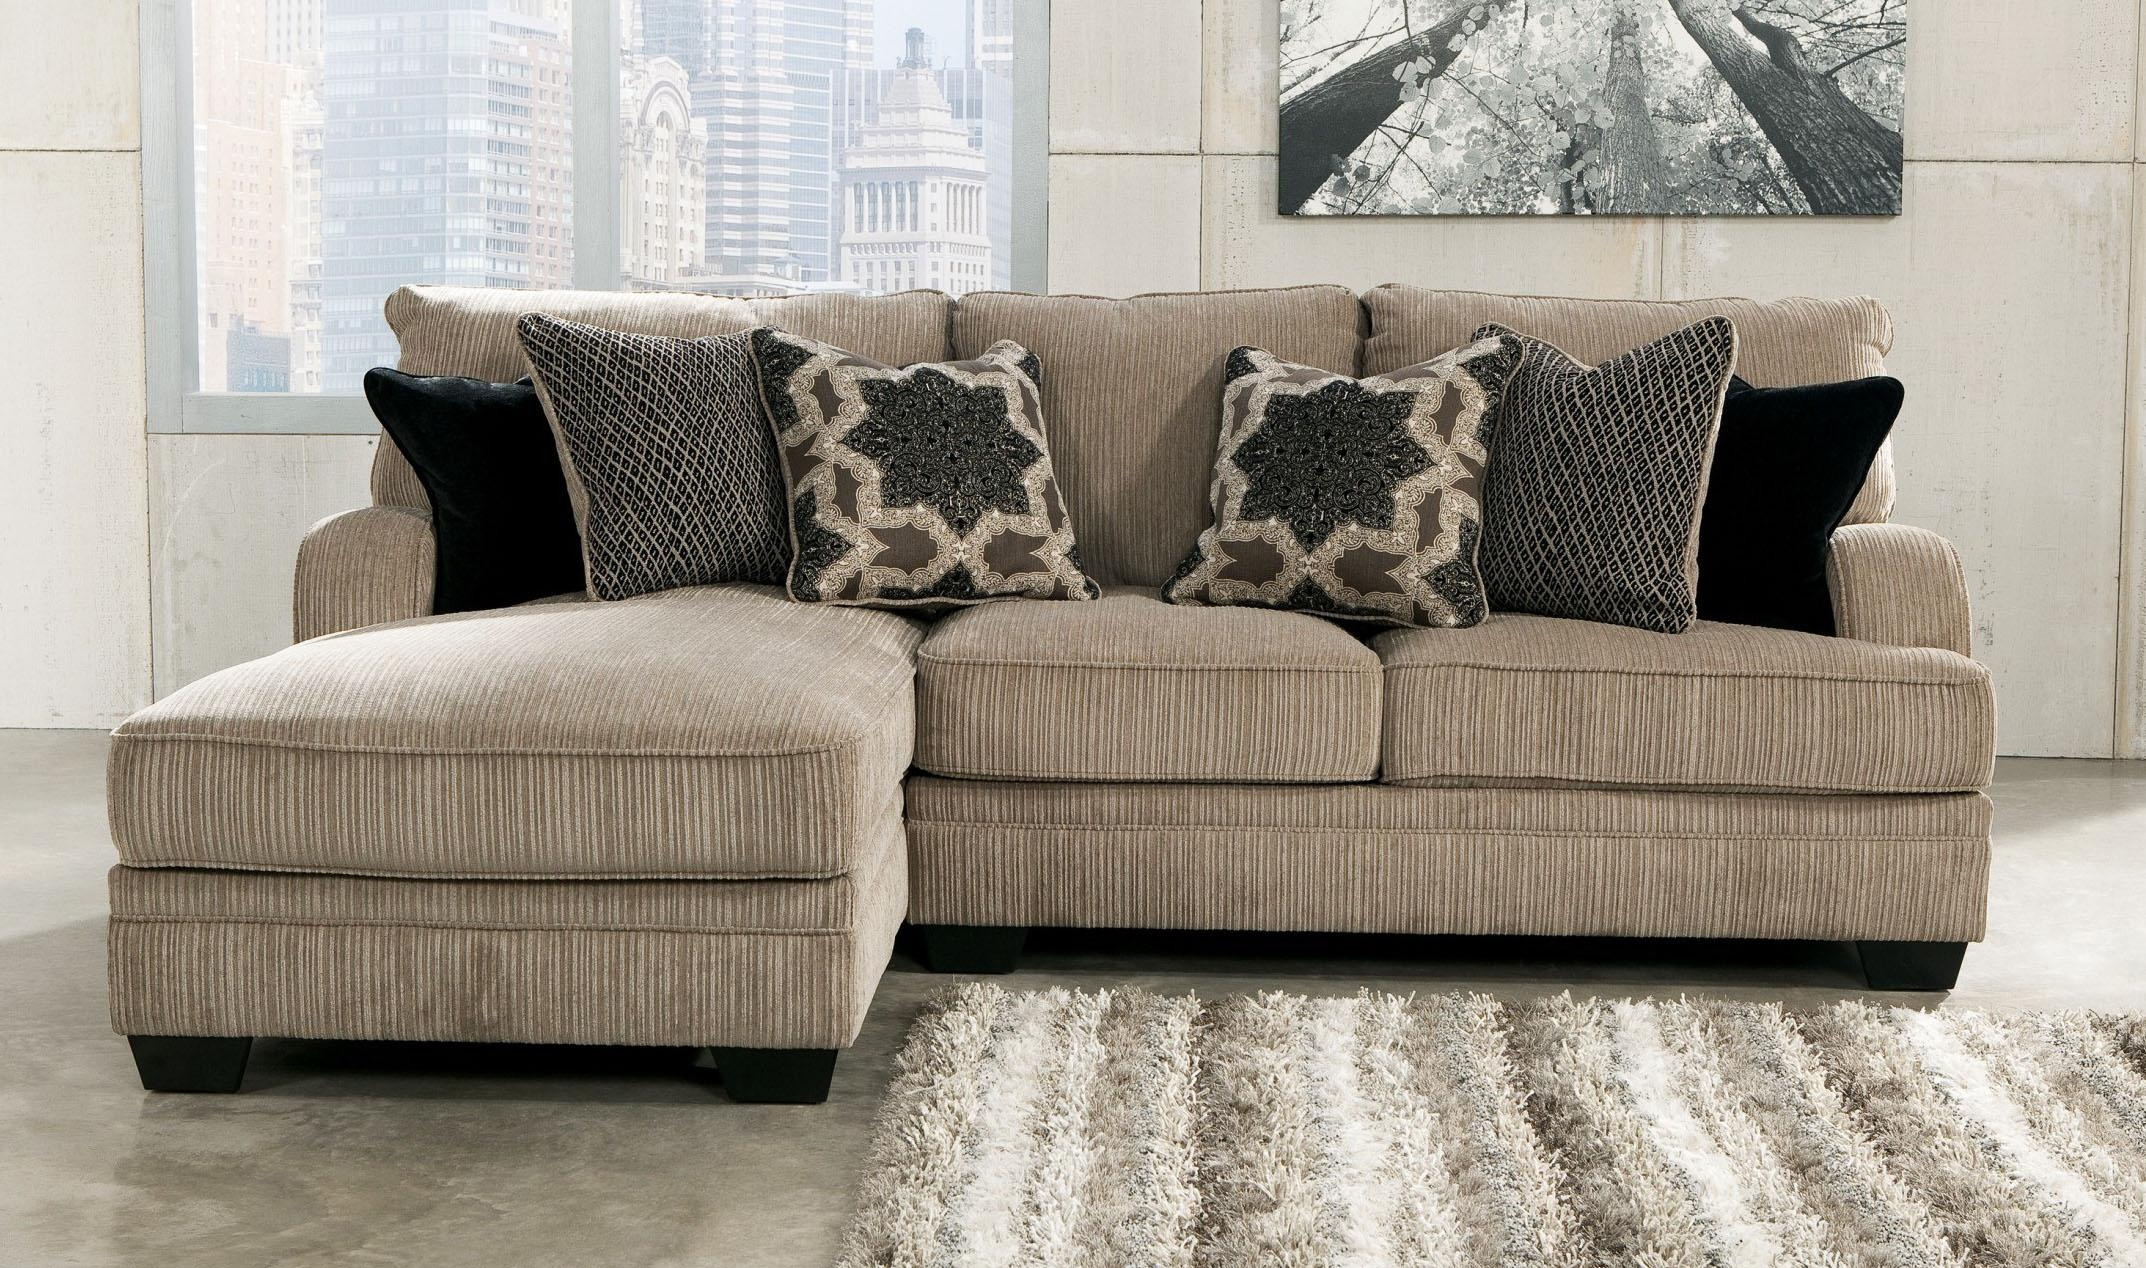 Sofas Center : Cheap Sectional Sofasith Recliners Cleanupflorida Inside Cheap Small Sectionals (View 4 of 15)